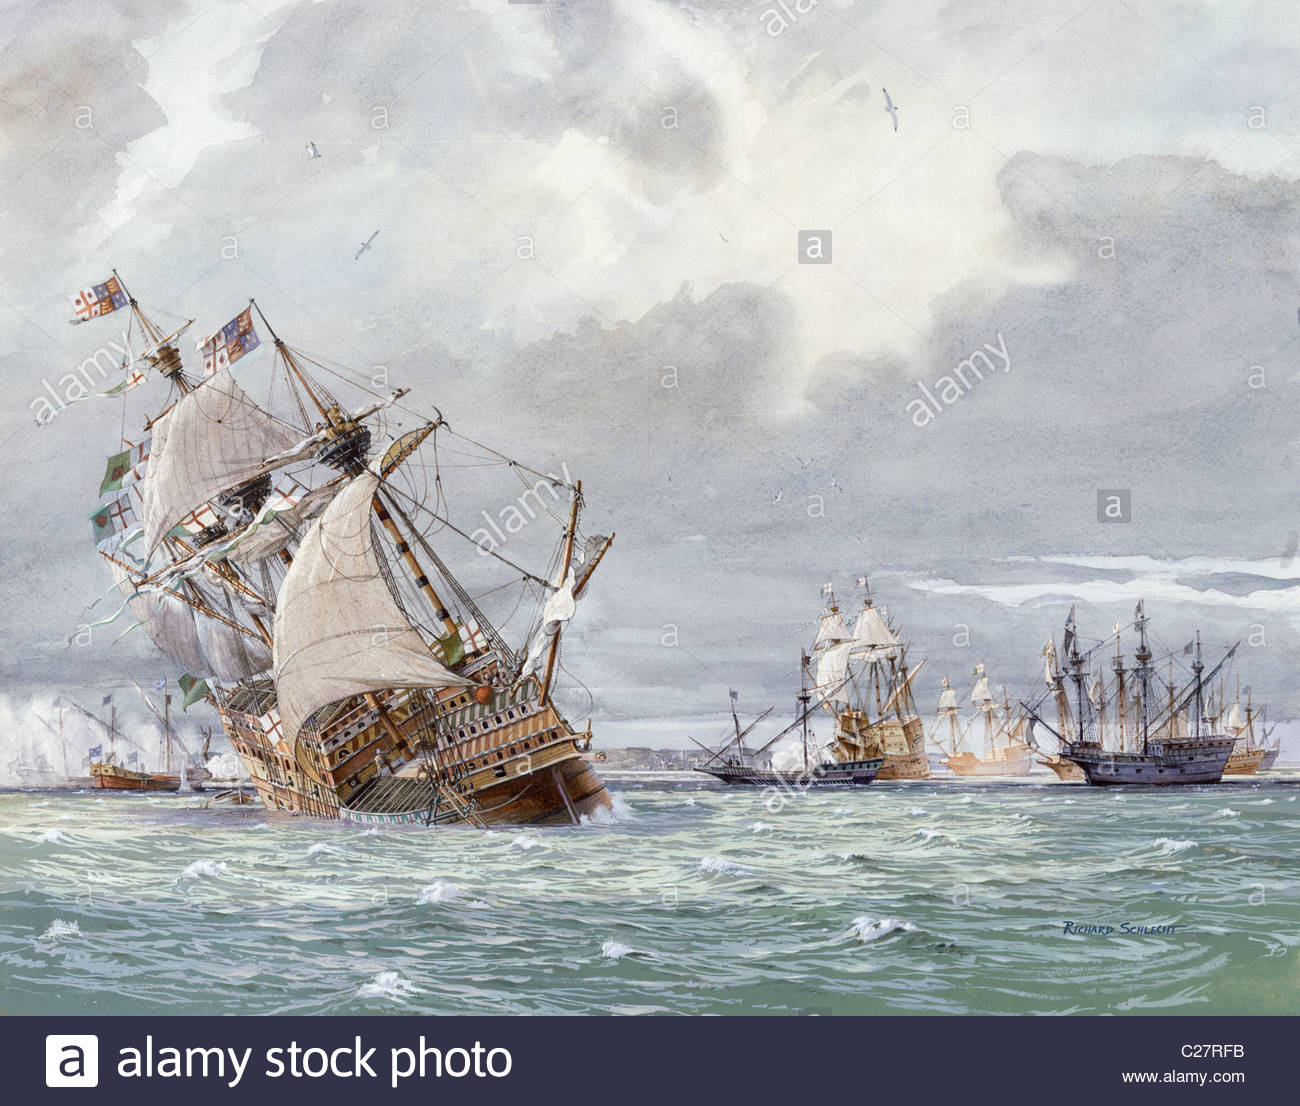 Oil painting of the sinking of the H.M.S. mary Rose. - Stock Image